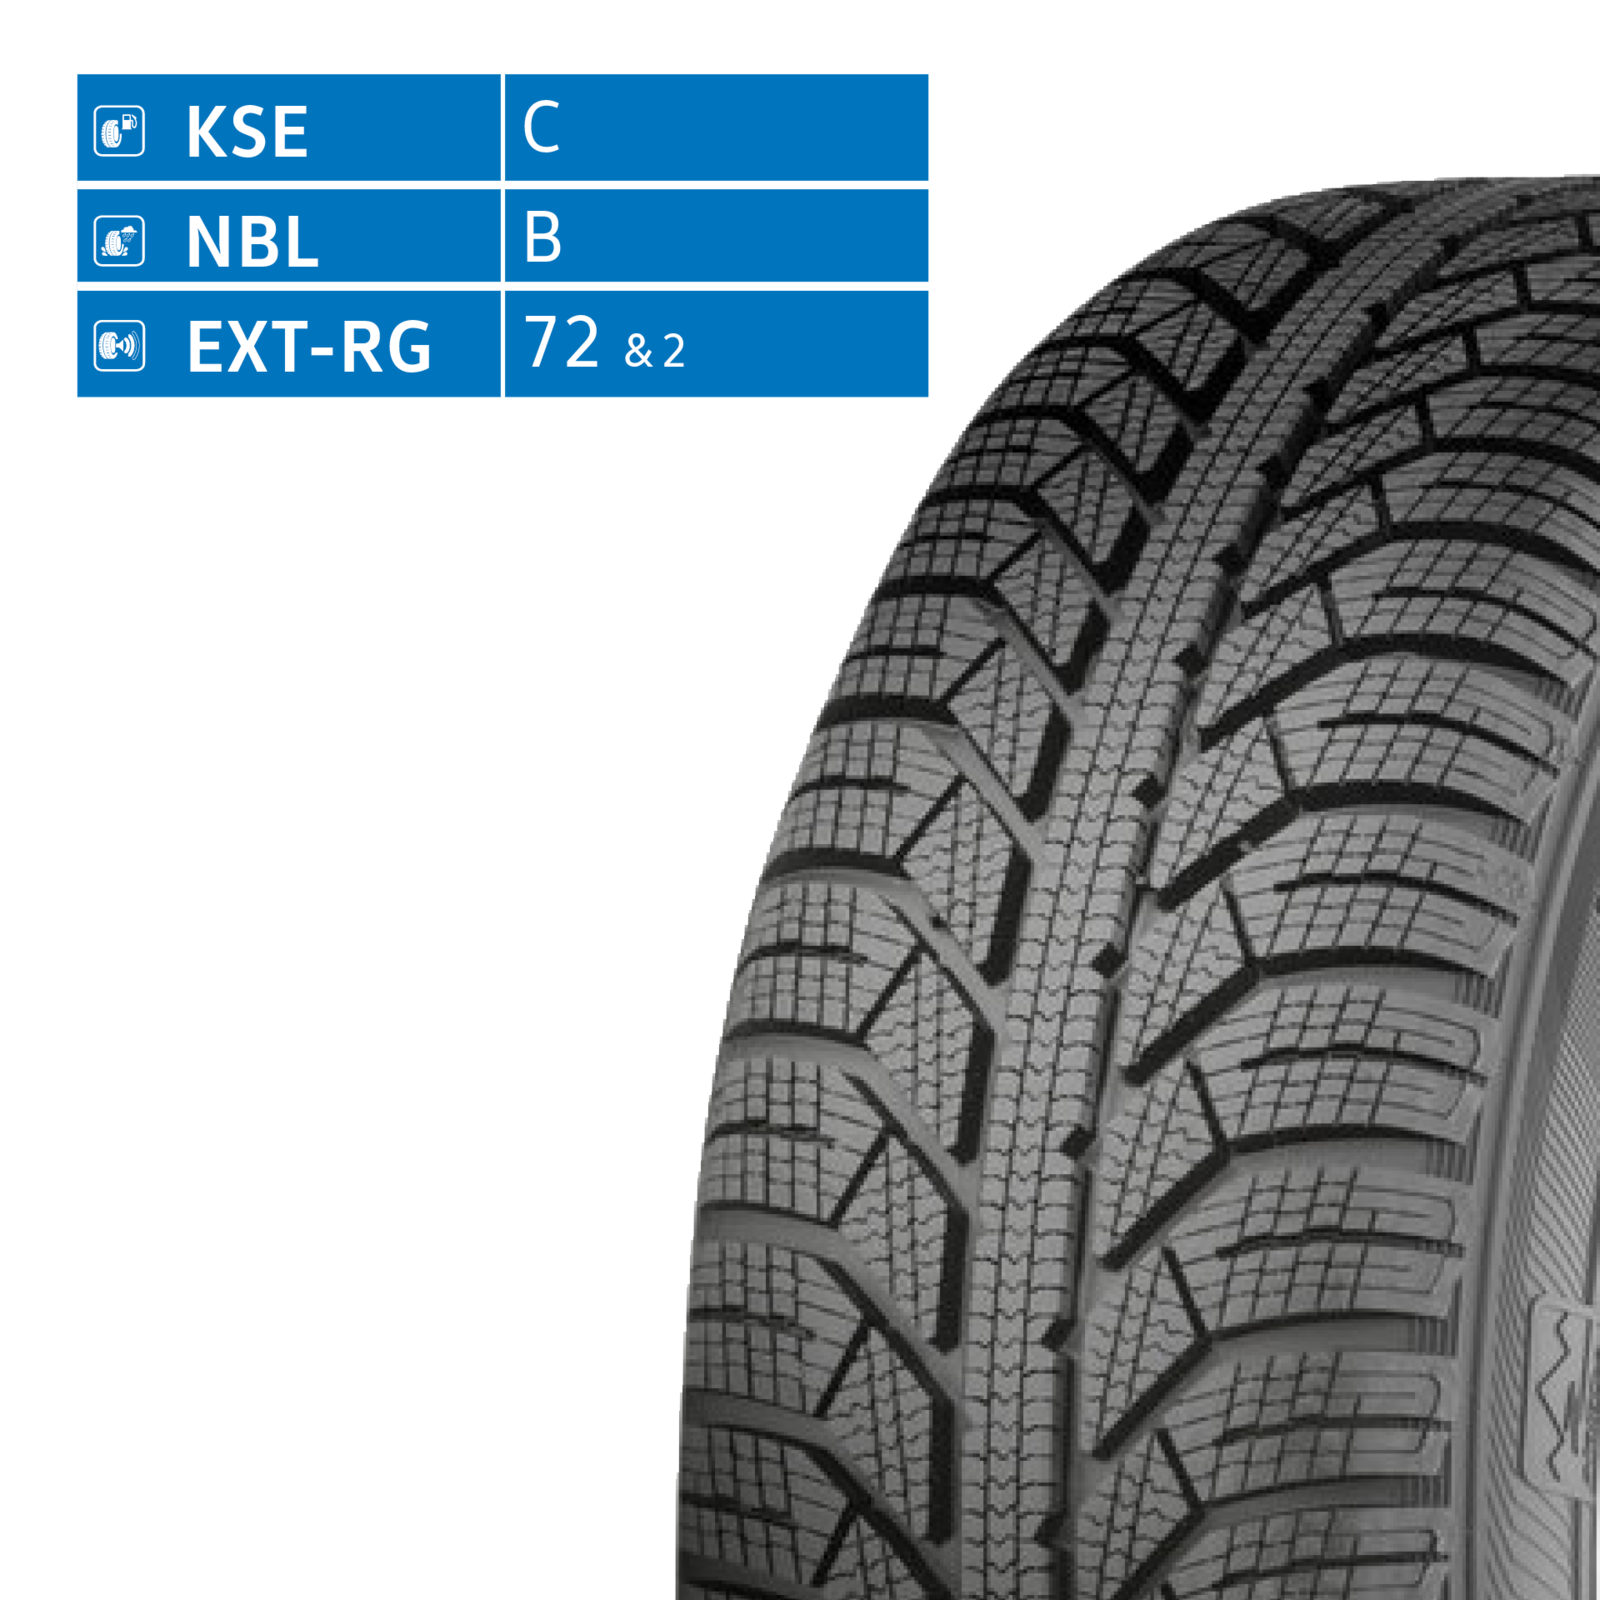 Winterreifen 195/65 R15 95T XL Semperit Master-Grip 2